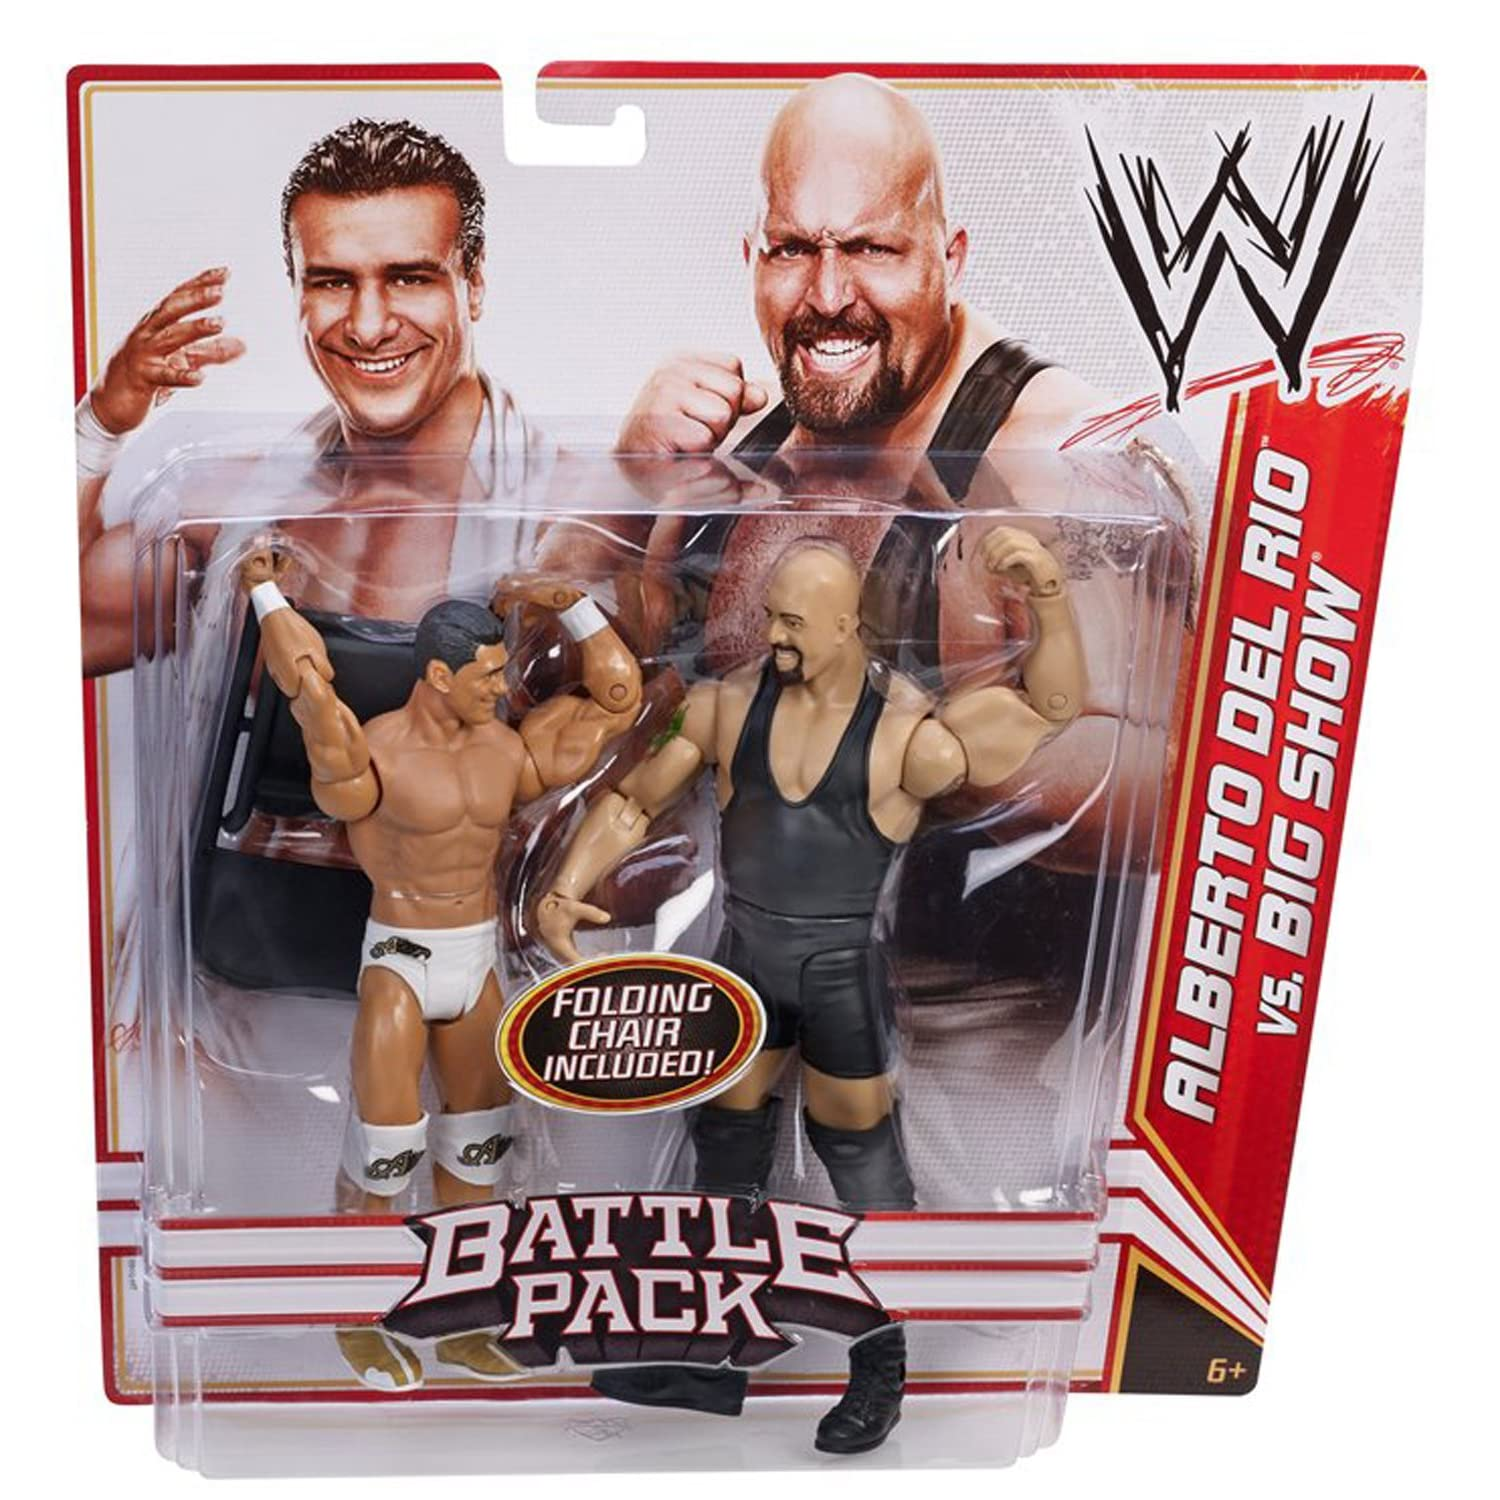 WWE Battle Pack Series 016 (2012) 81xBvWqSEsL._AA1500_